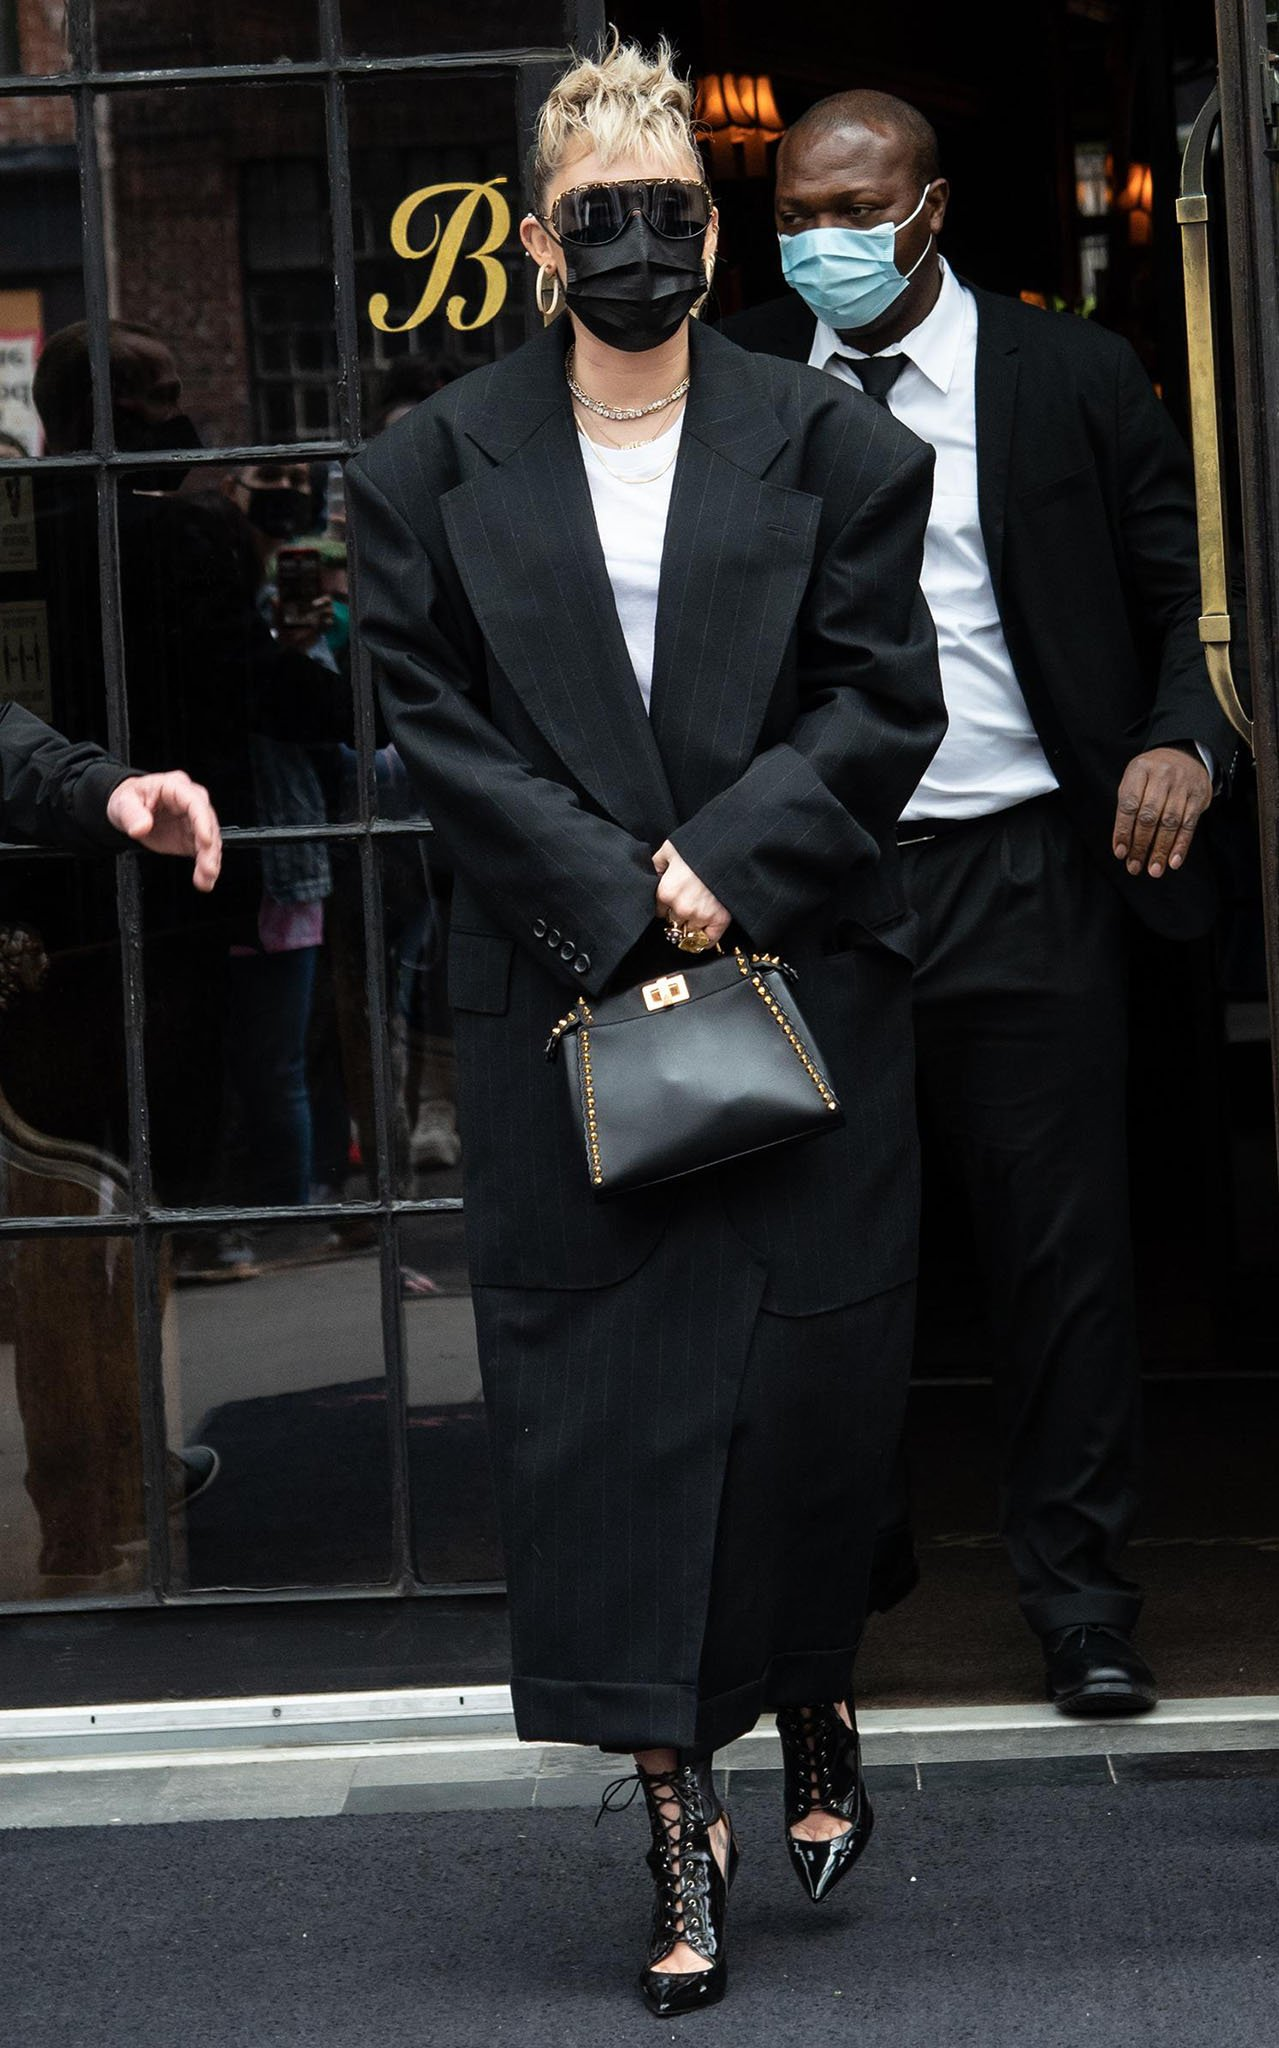 Miley Cyrus leaving The Bowery Hotel for her SNL Performance on May 8, 2021